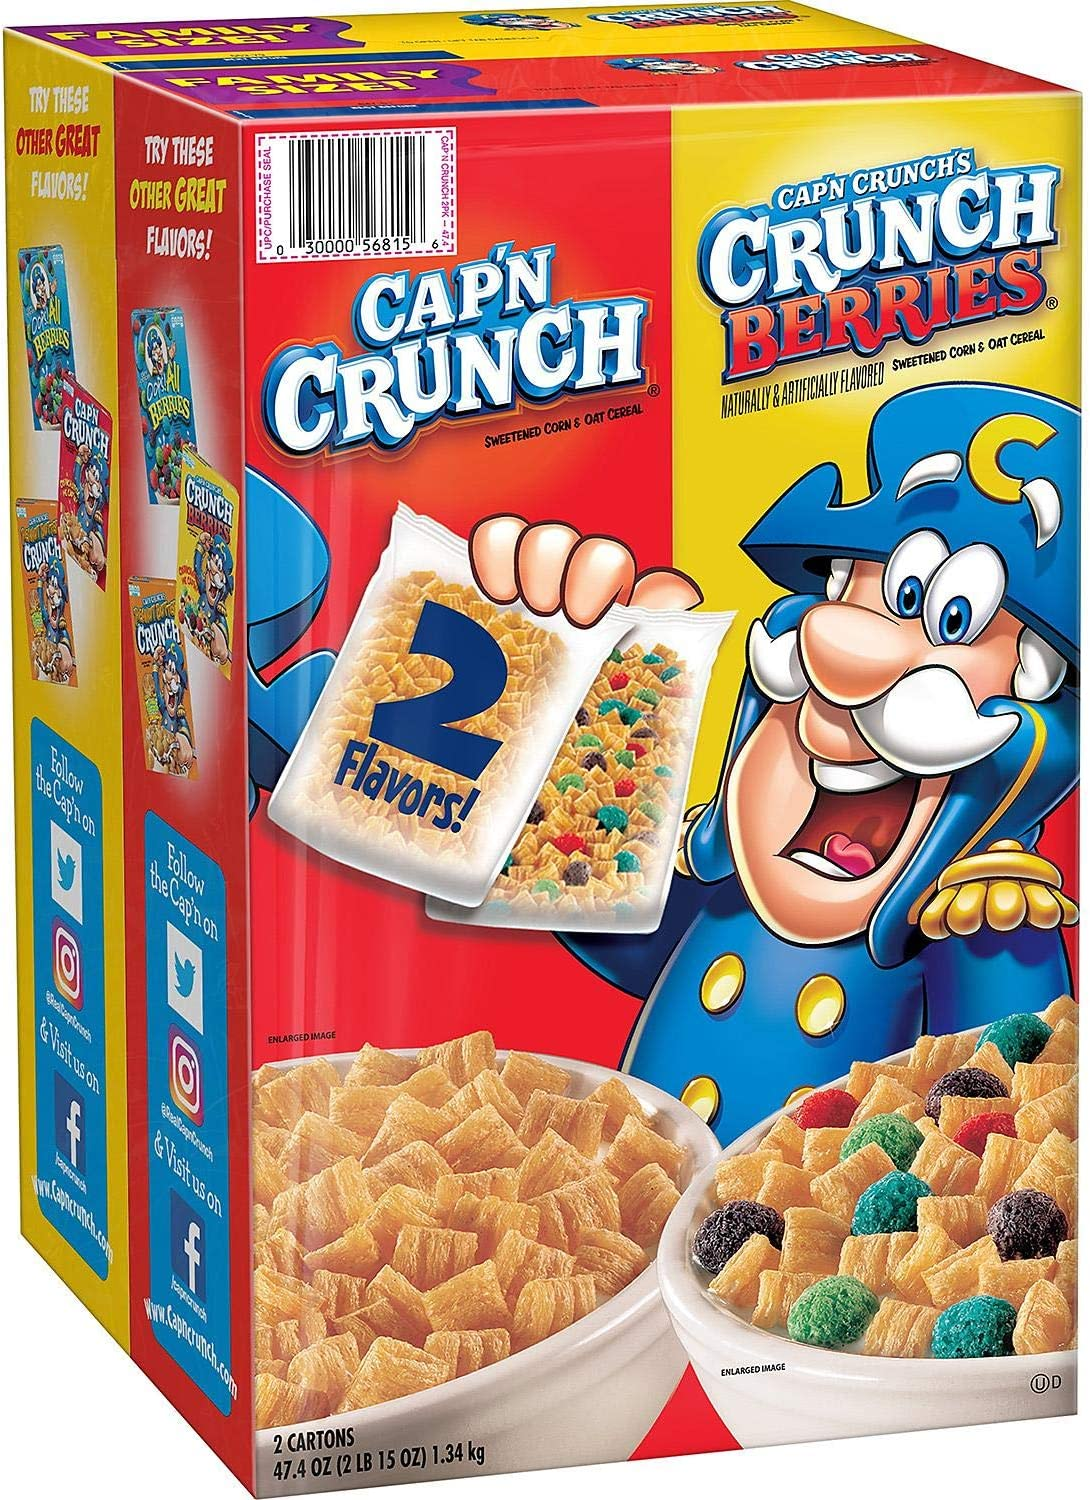 Cap N Crunch Original Crunch Berries And Oops All Berries Variety Pack Cereal 54 1 Ounce 1 53kg S Amazon Ca Grocery You can vote for oops! cap n crunch original crunch berries